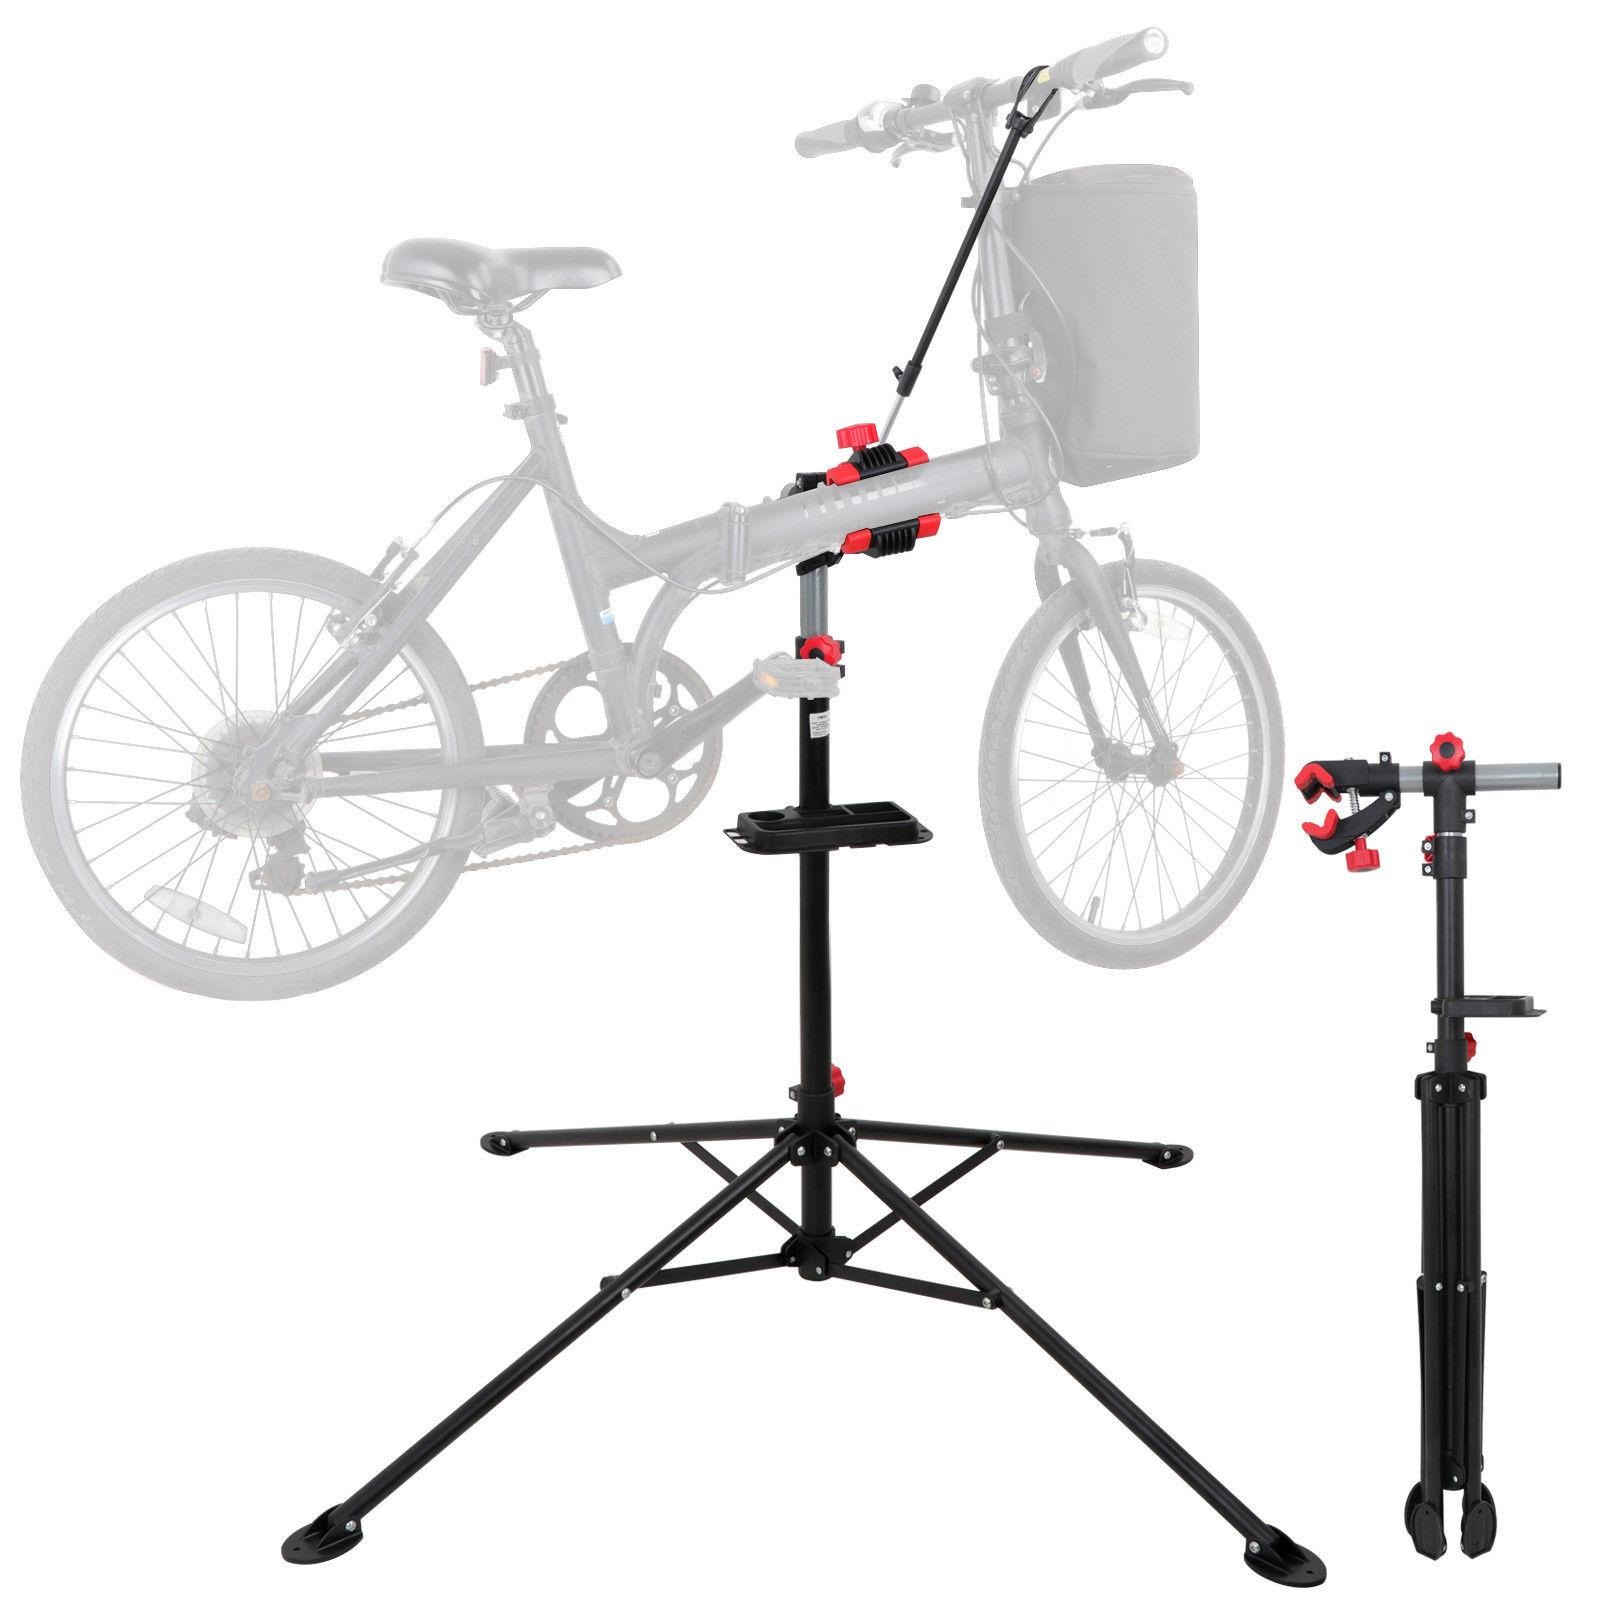 "HQ Bike Repair Stand Rack Steel Body 74"" Telescopic Arm Bicy"